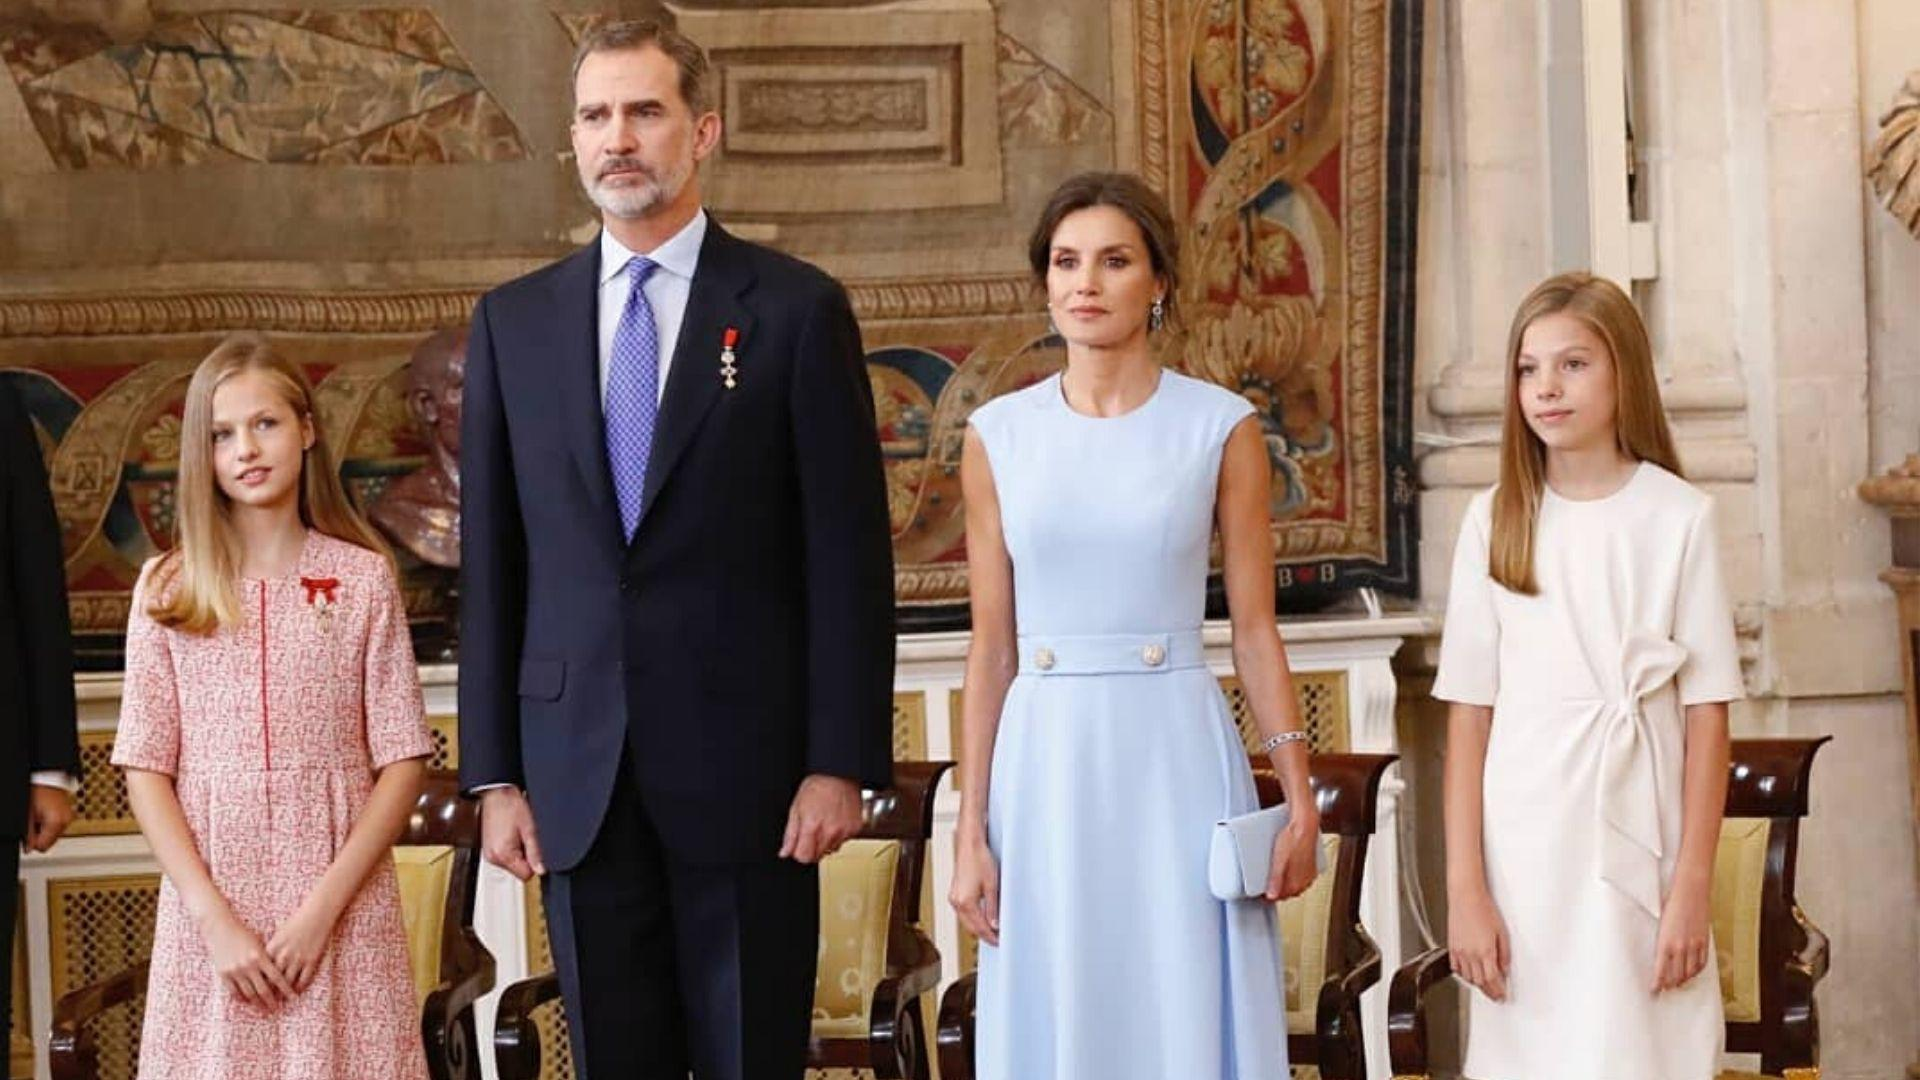 The Spanish Royal Family Share Their Annual Christmas Card